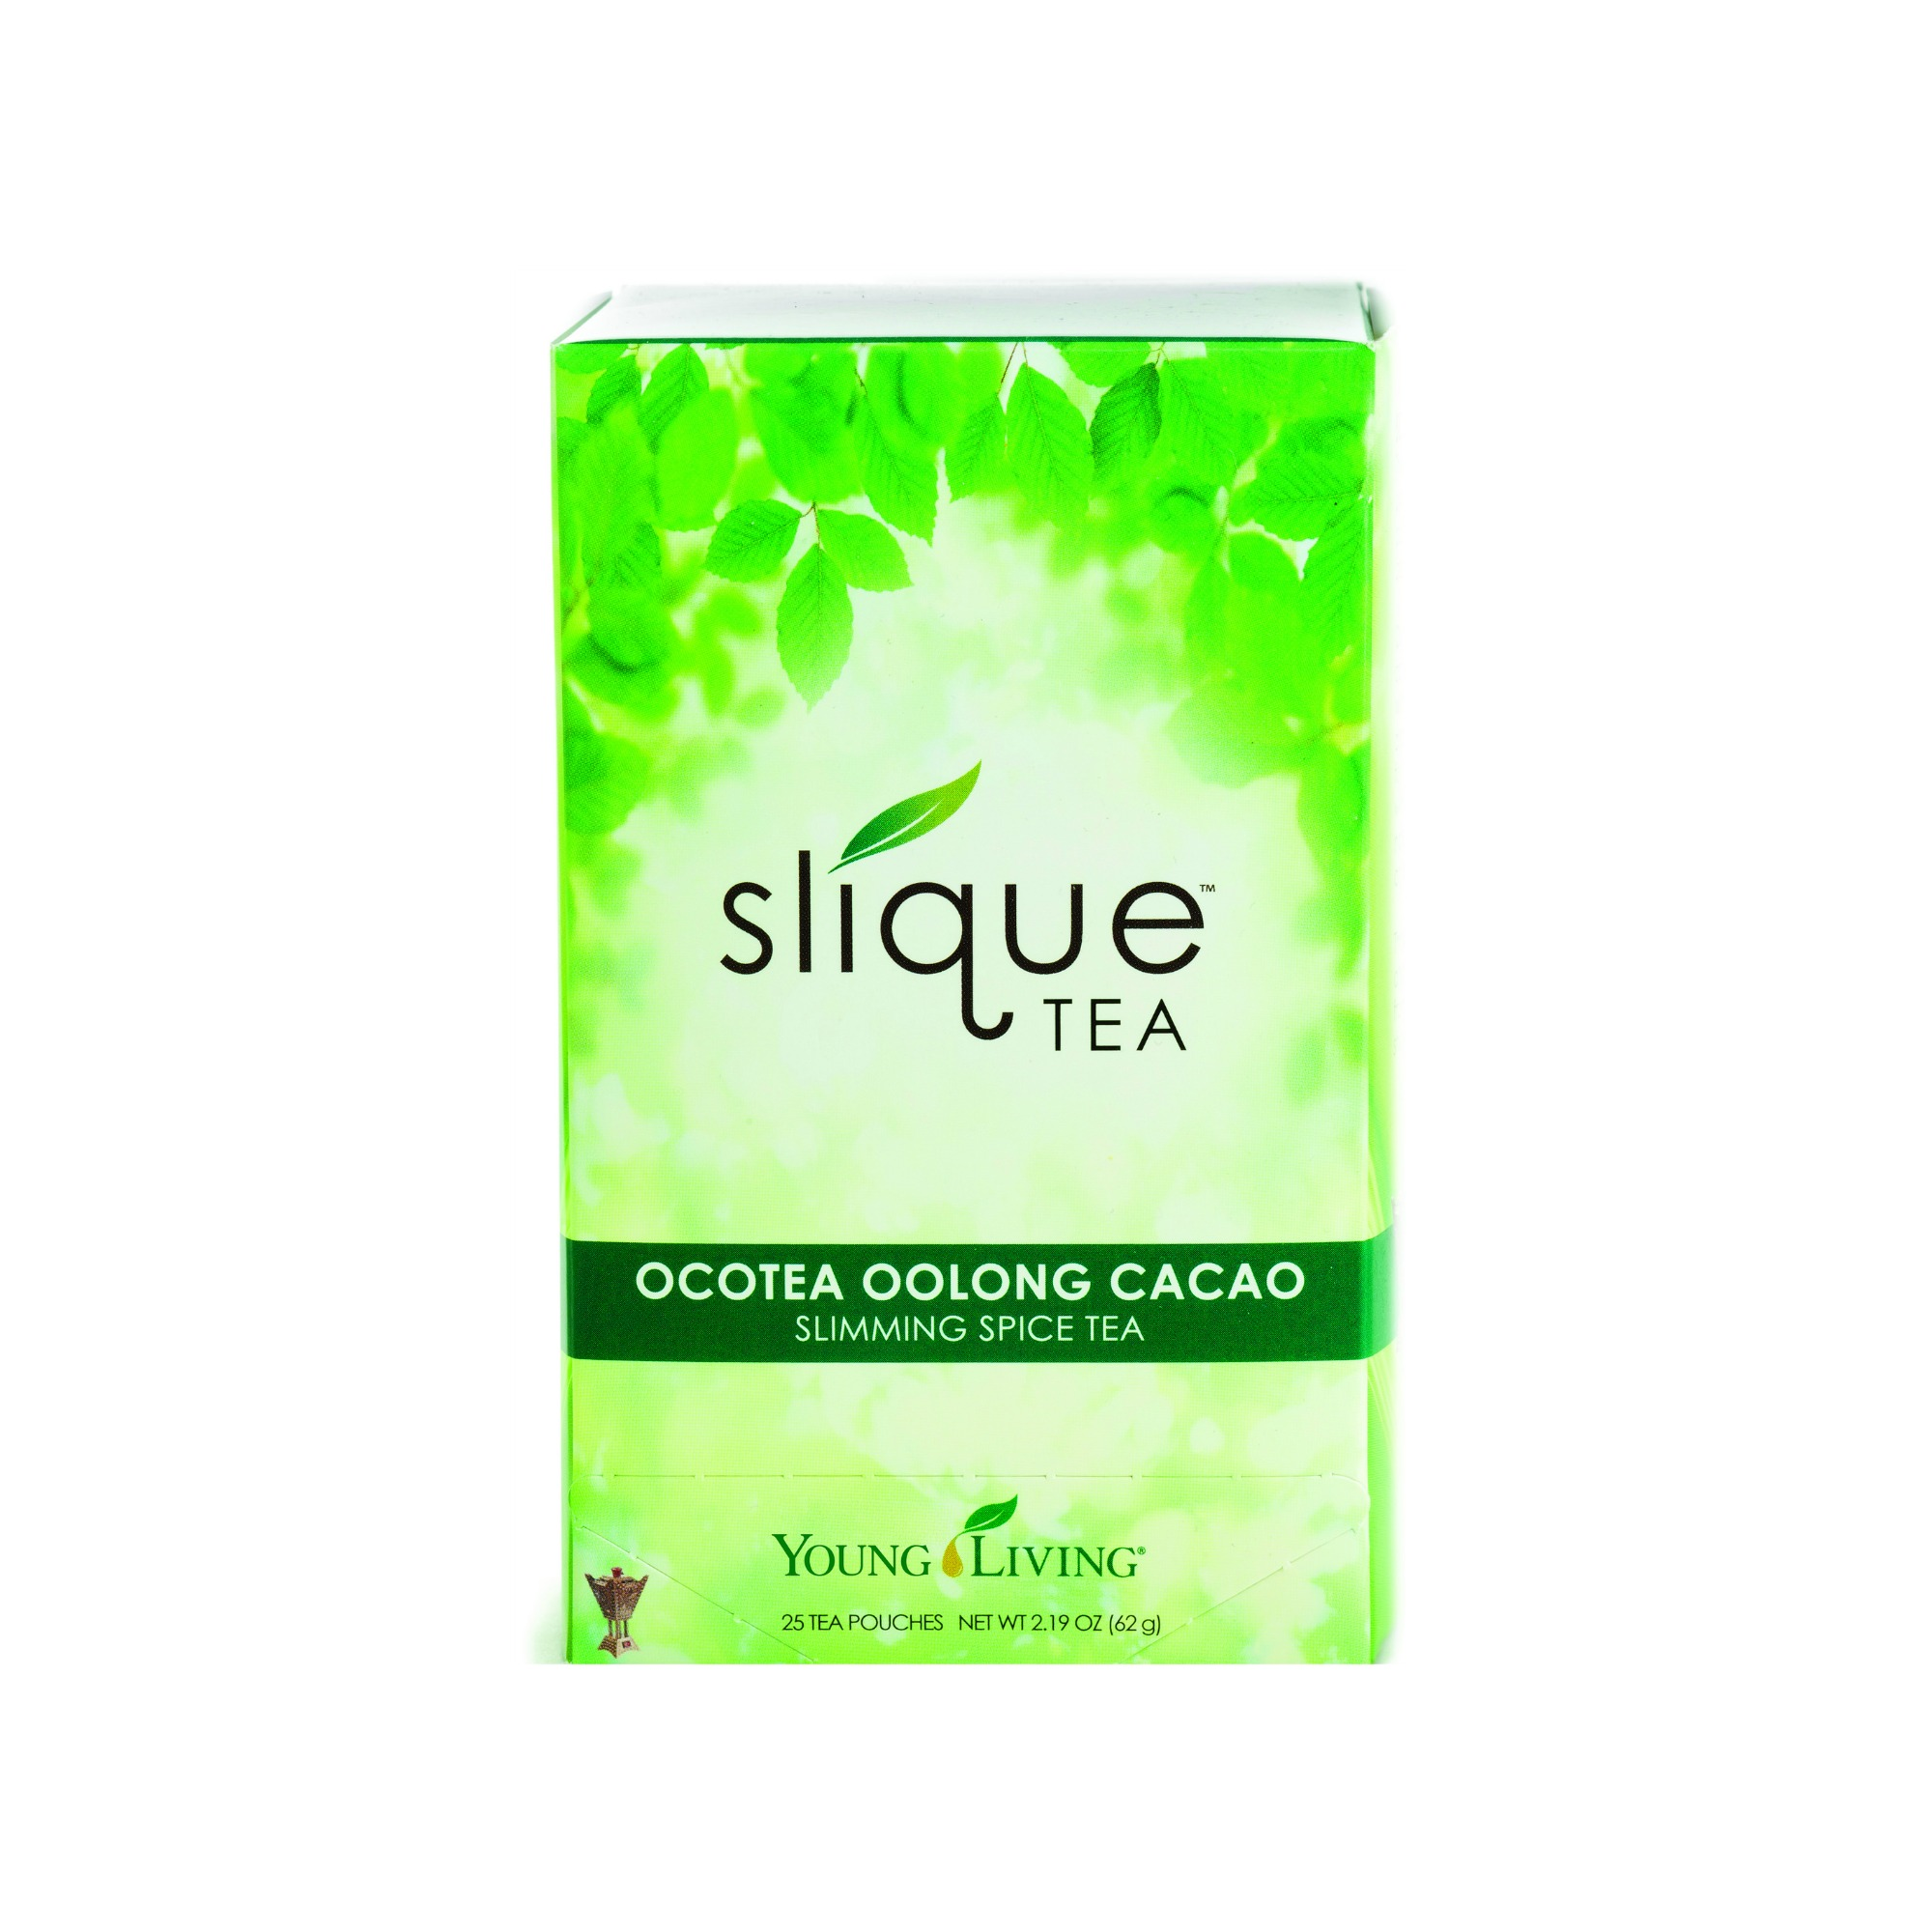 SLIQUE TEA    Slique Tea is an exotic drink formulated with natural ingredients to help support individual weight goals. This blend is rich in flavonoids, a dietary compound generally associated with helping maintain certain normal, healthy body functions. It also contains polyphenols, which may be useful as part of a guilt-free weight-management regimen when combined with a healthy diet and physical activity. This unique blend is enhanced with 100% pure therapeutic grade Frankincense powder.   Click here   to learn more about this product.